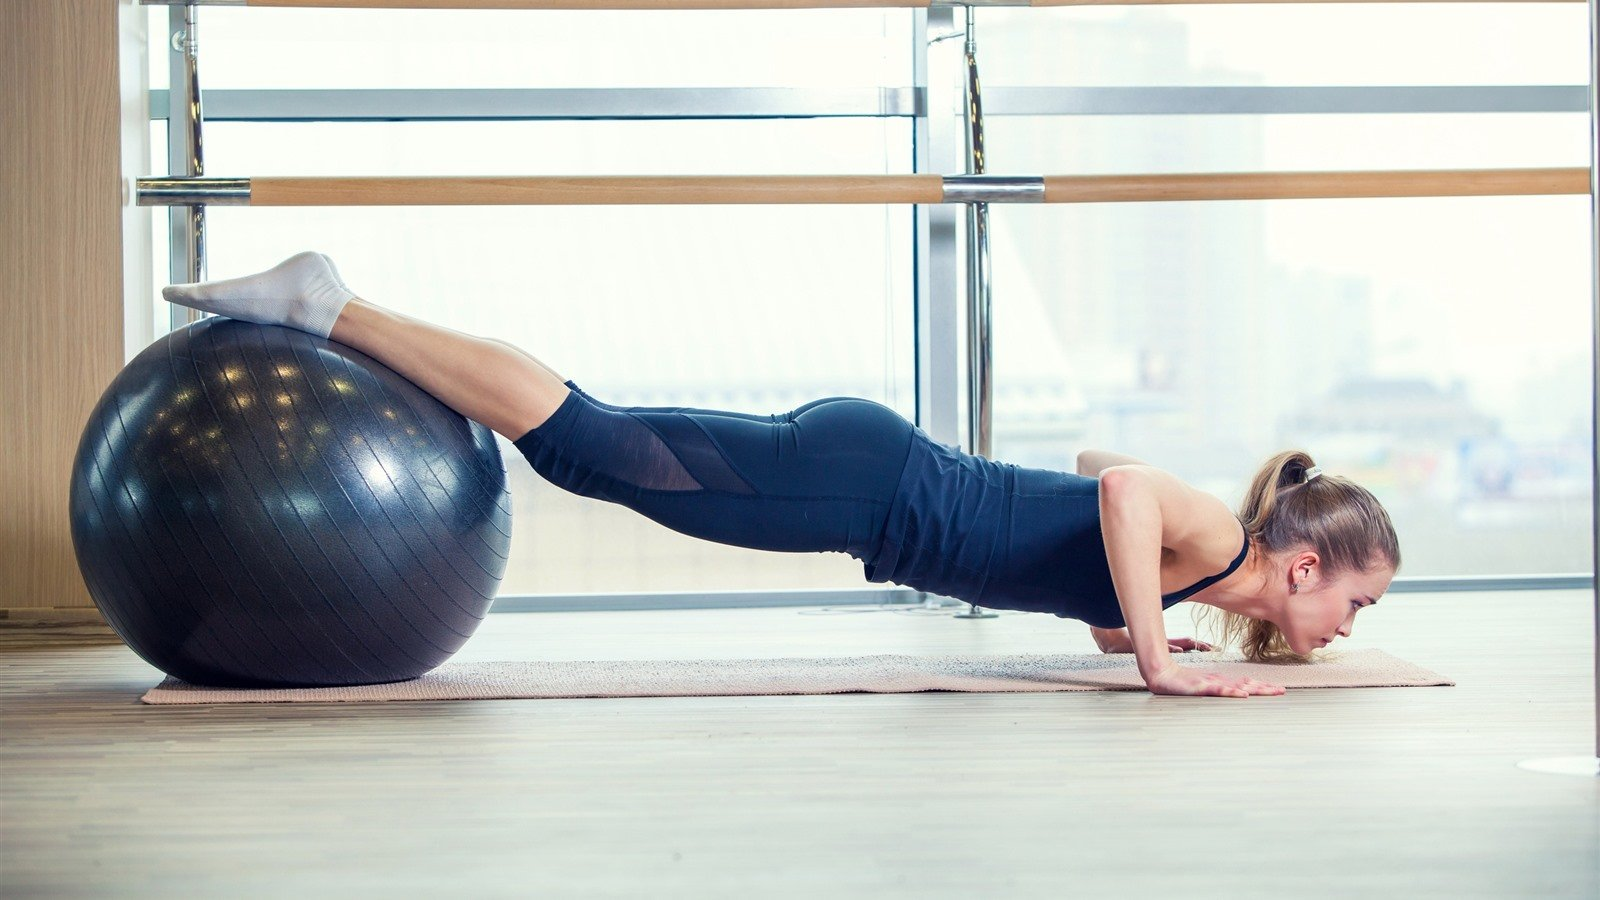 5 Exercises To Do With A Balance Ball For Maximum Effectiveness